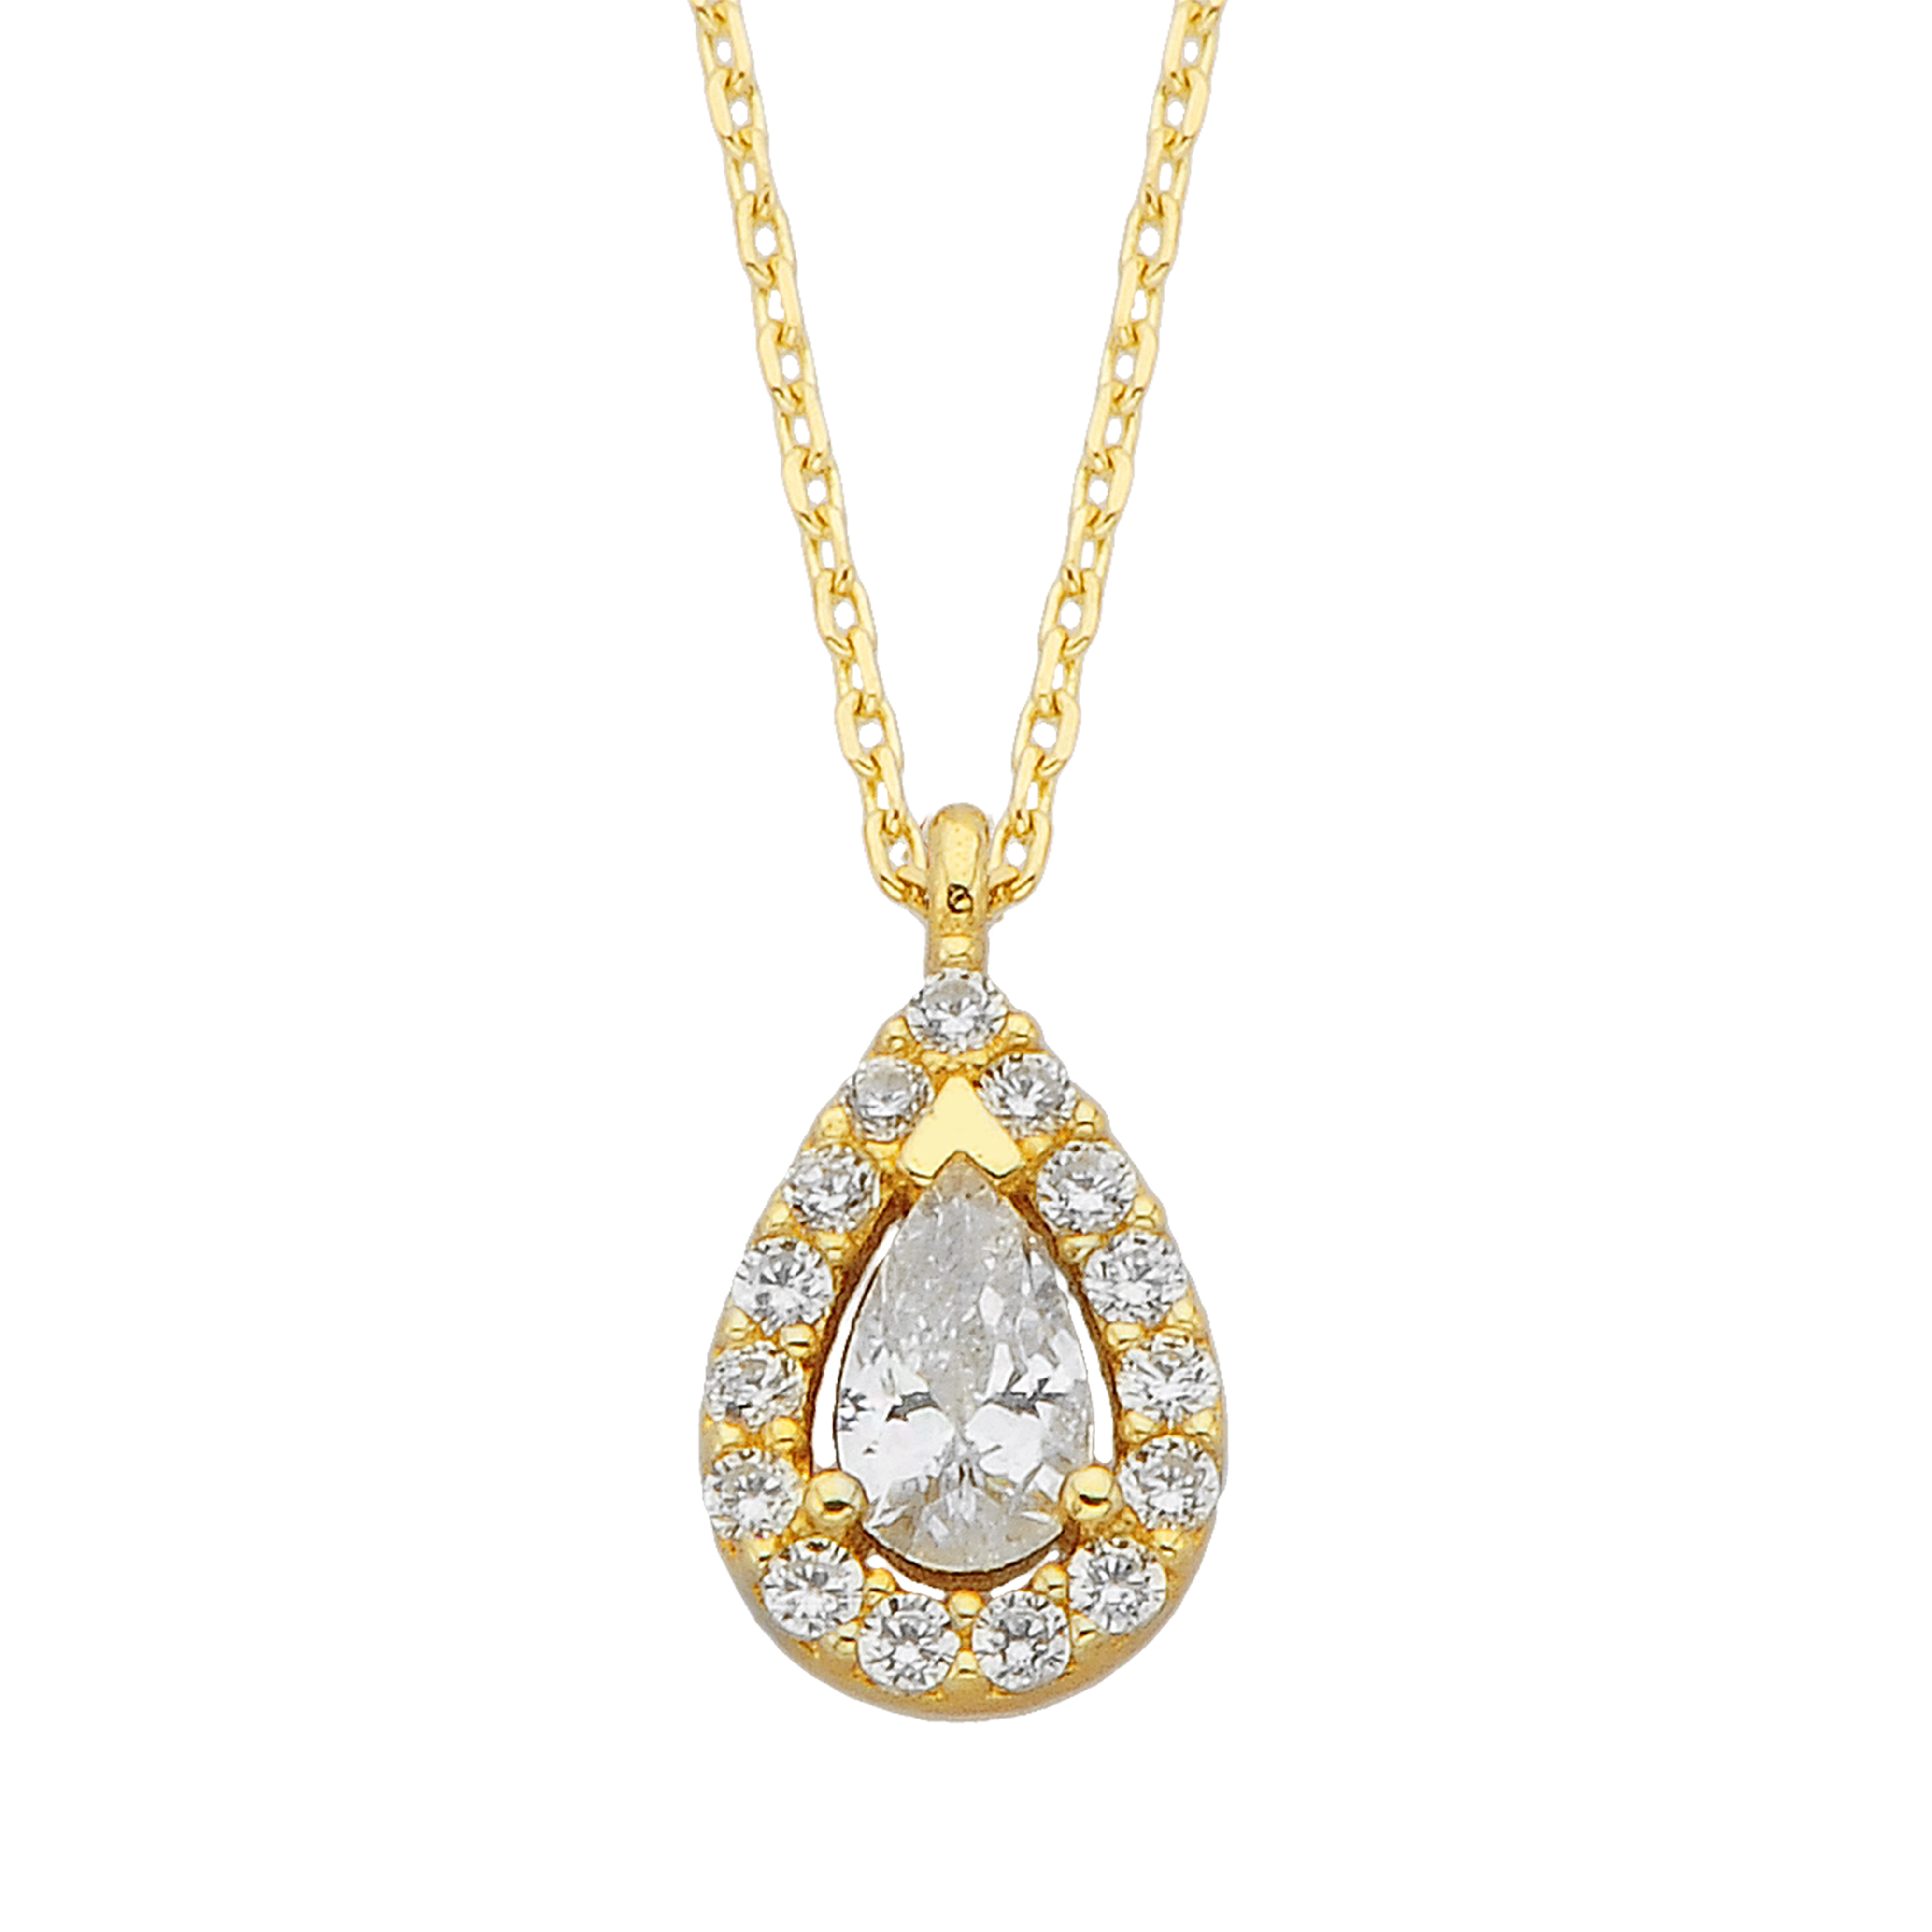 14K Real Solid Gold Teardrop Halo Pendant Necklace for Women Birthday Gift Christmas Mother's Day